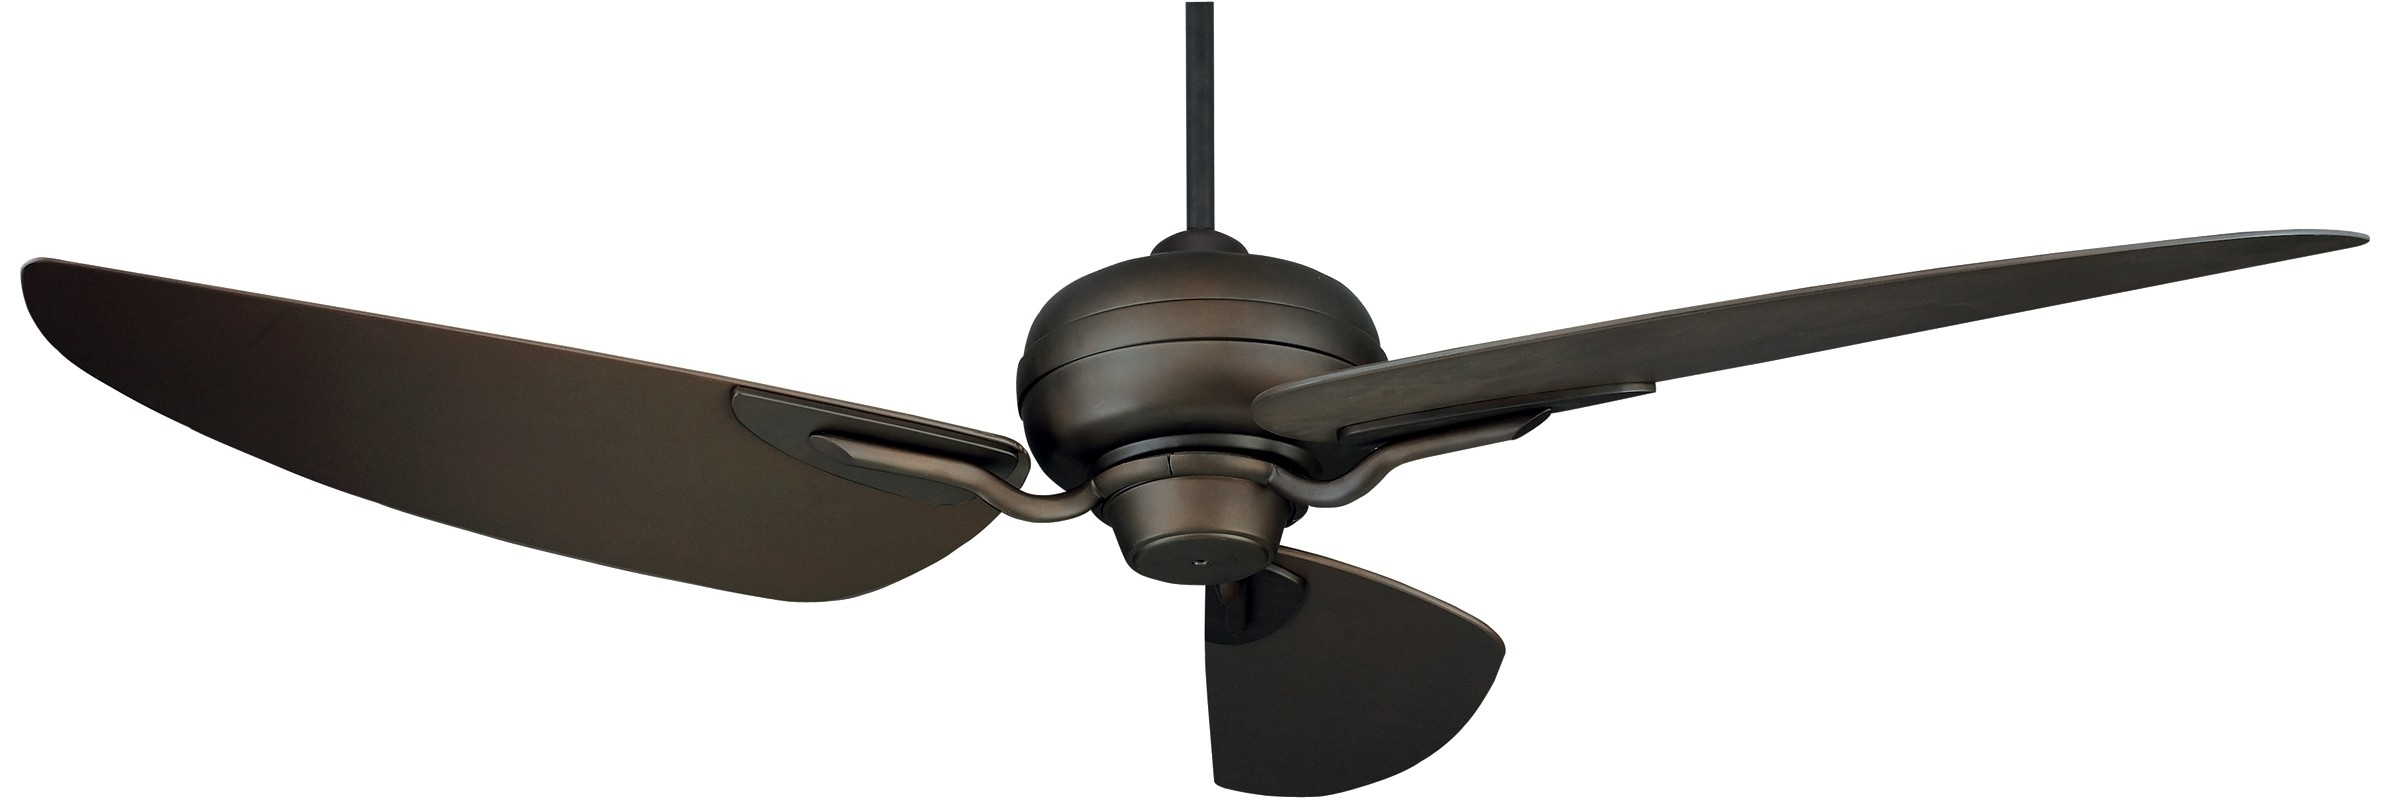 22 Exterior Ceiling Fans, Industrial Style Ceiling Fanrustic Regarding Trendy Bronze Outdoor Ceiling Fans (View 1 of 20)